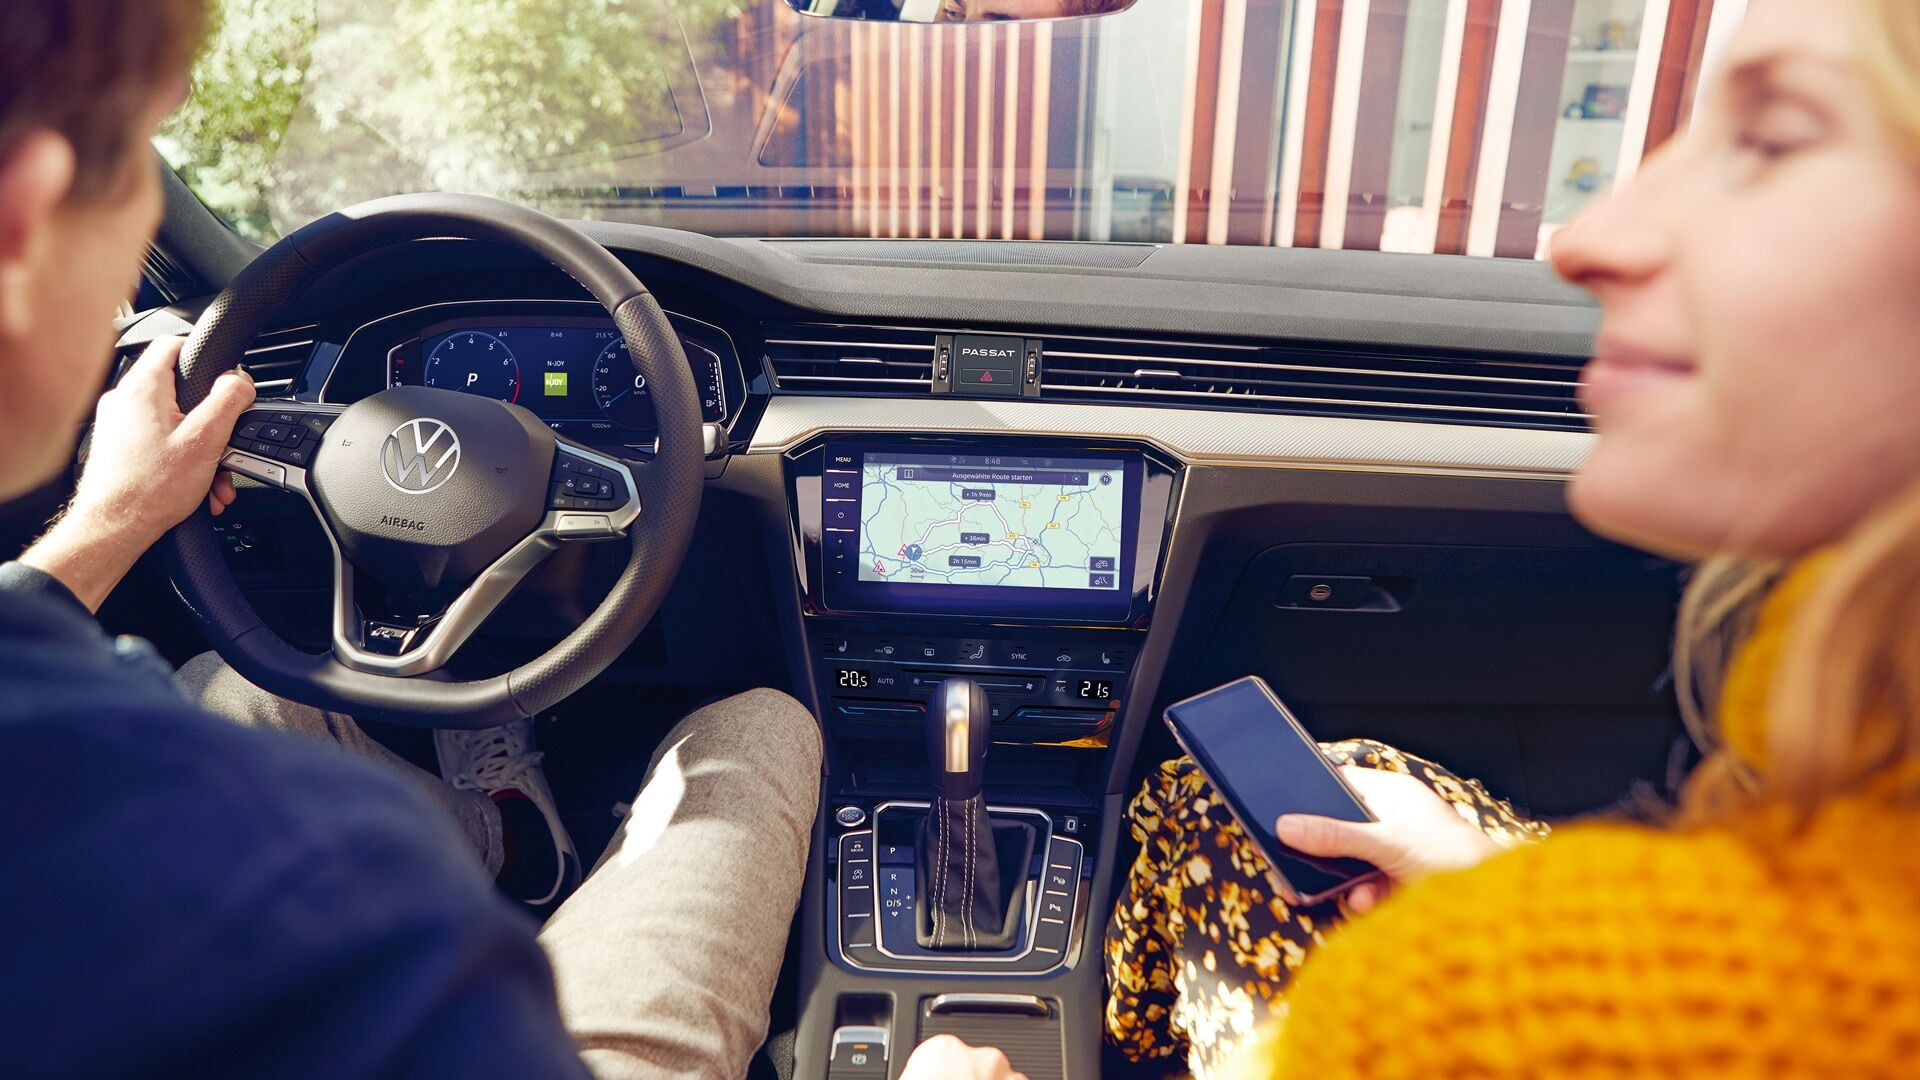 passat interior with people and discover pro map